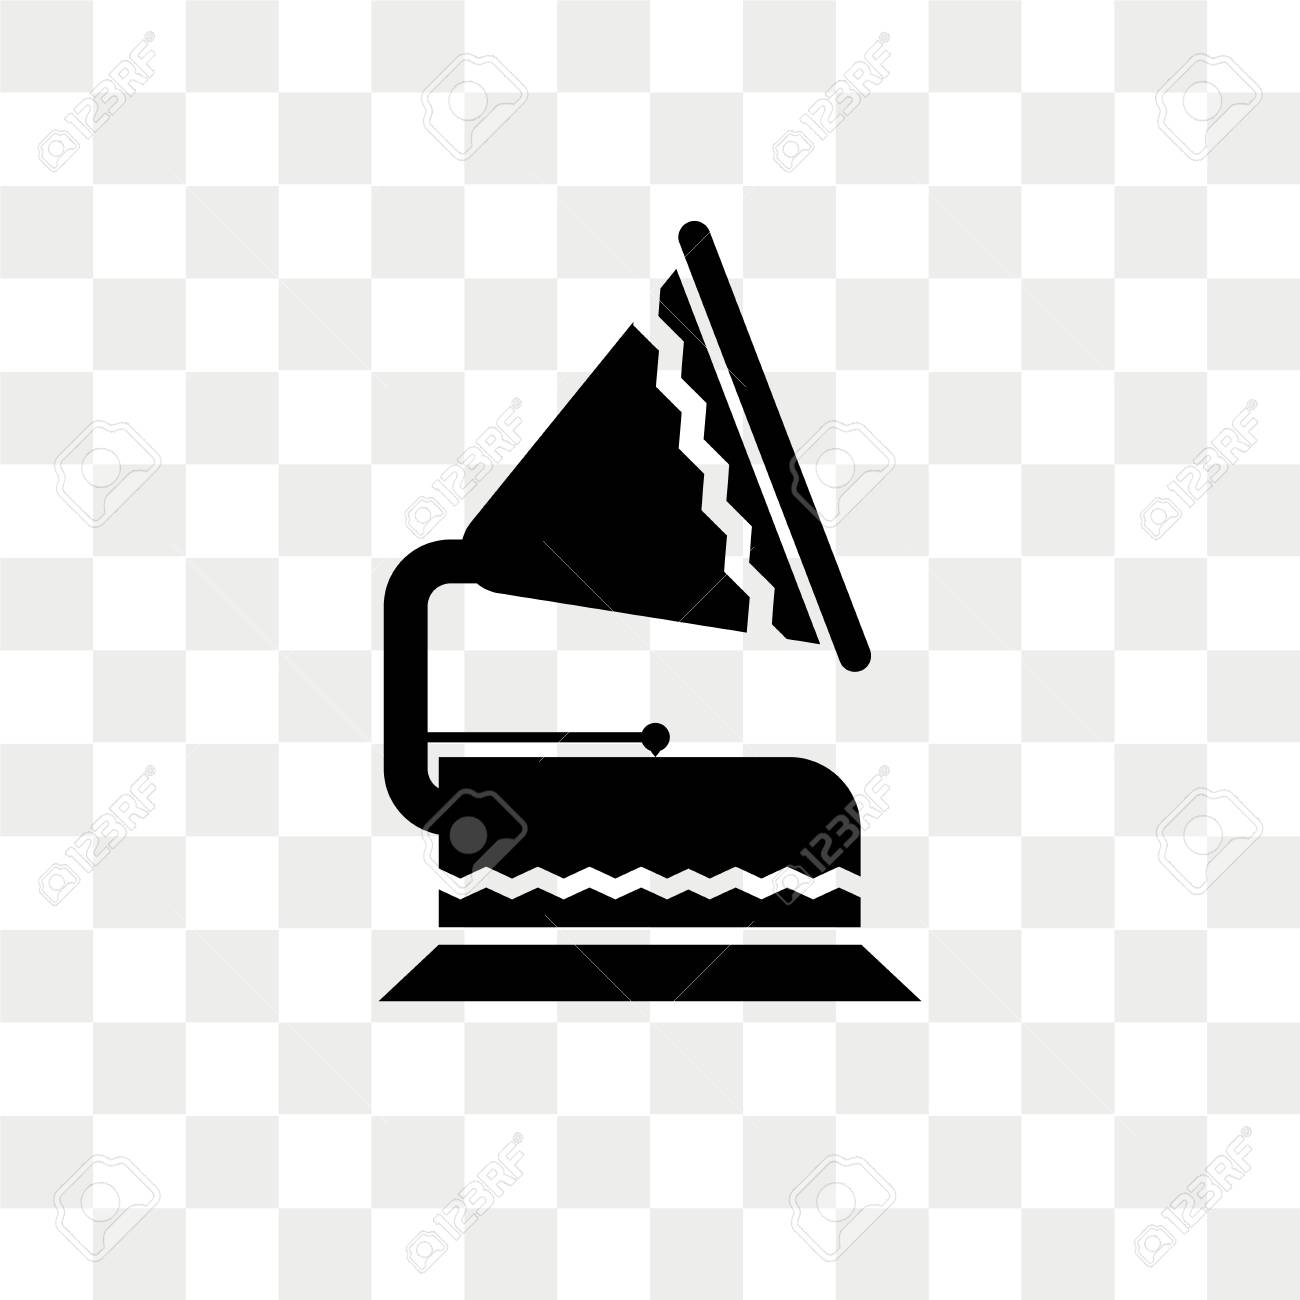 gramophone vector icon isolated on transparent background gramophone royalty free cliparts vectors and stock illustration image 108635188 gramophone vector icon isolated on transparent background gramophone